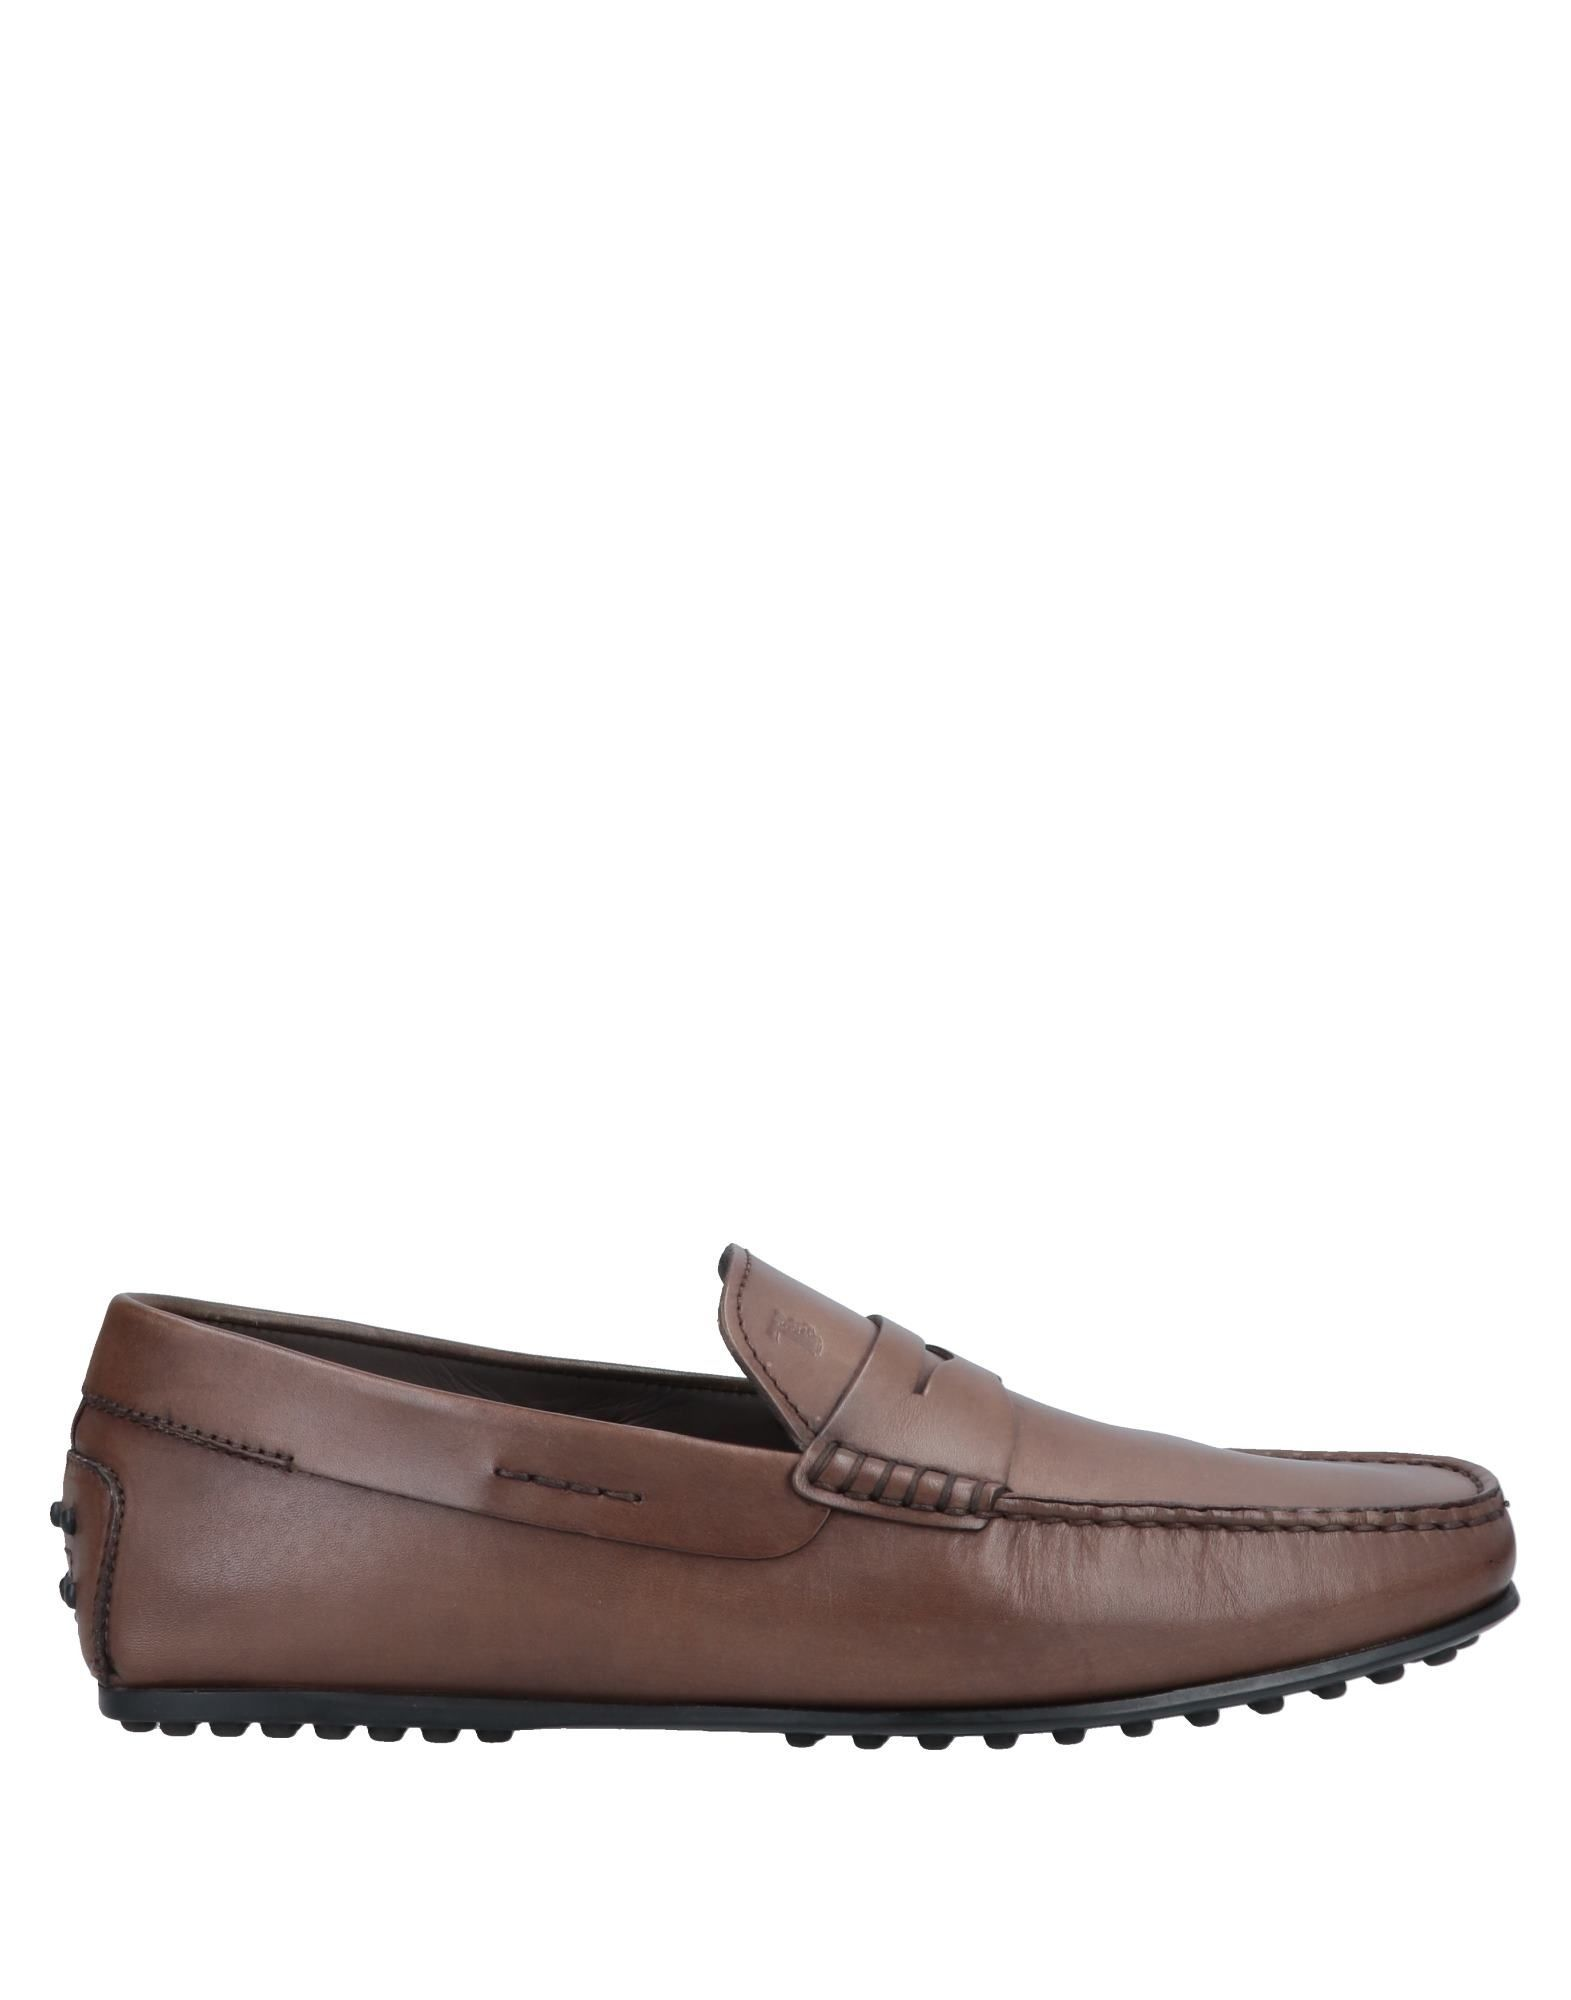 38327739495 TOD'S LOAFERS. #tods #shoes | Tod'S in 2019 | Loafers, Loafers men ...